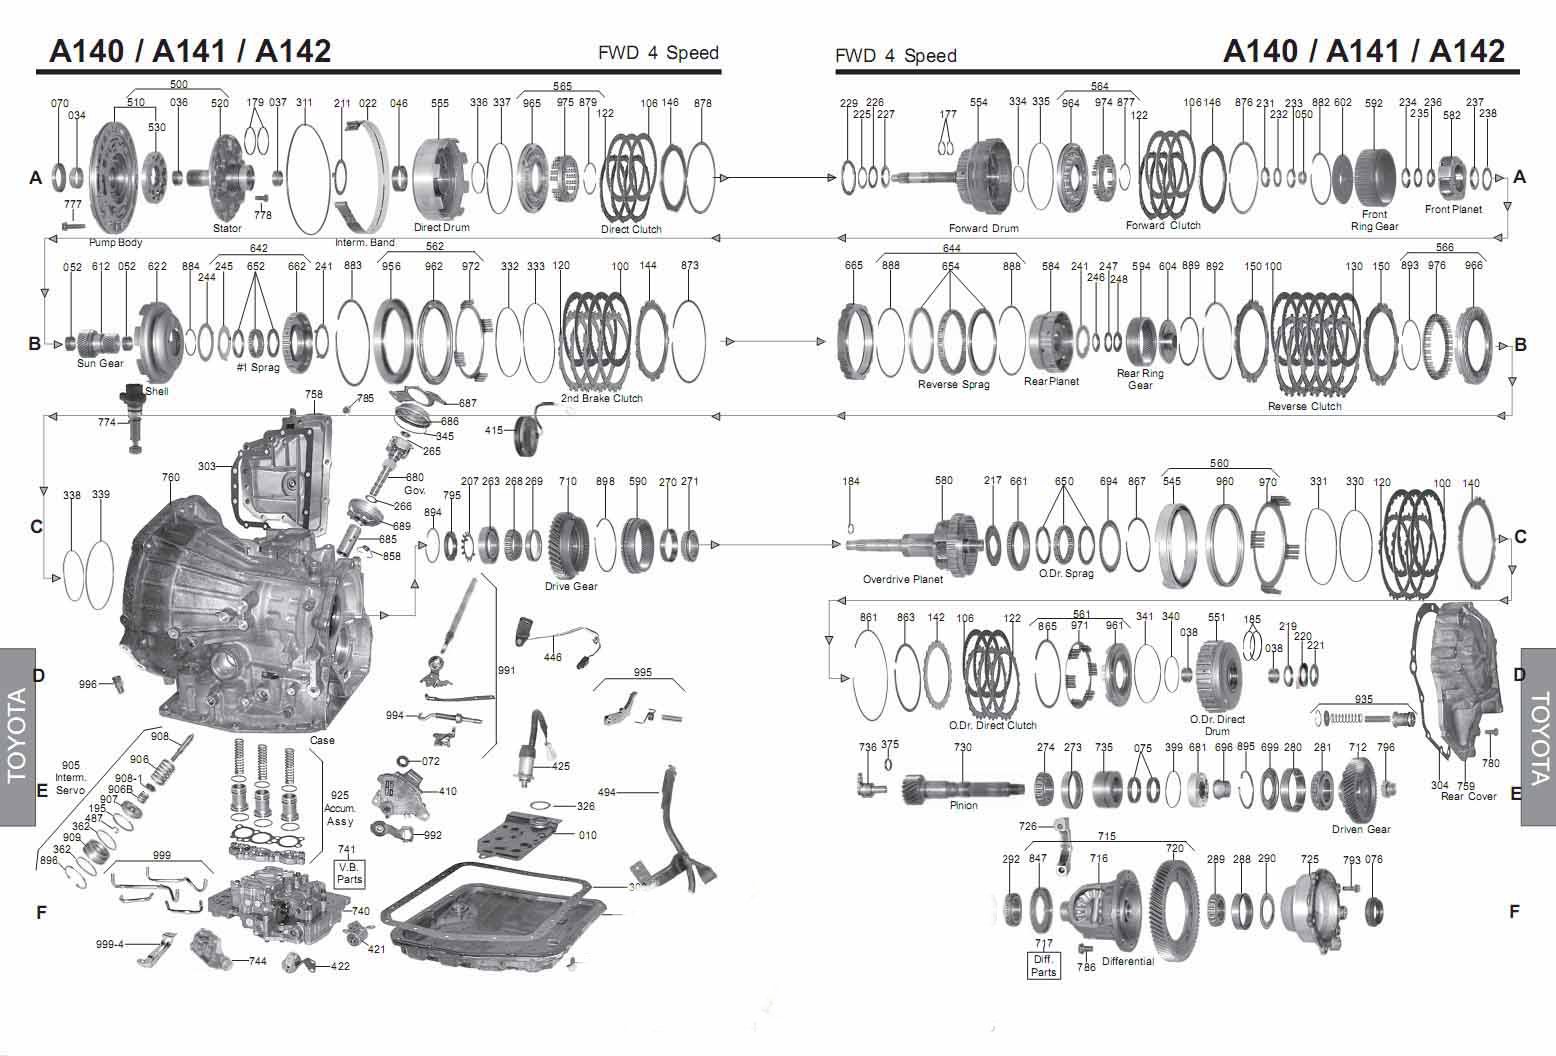 Transmission Repair Manuals A140